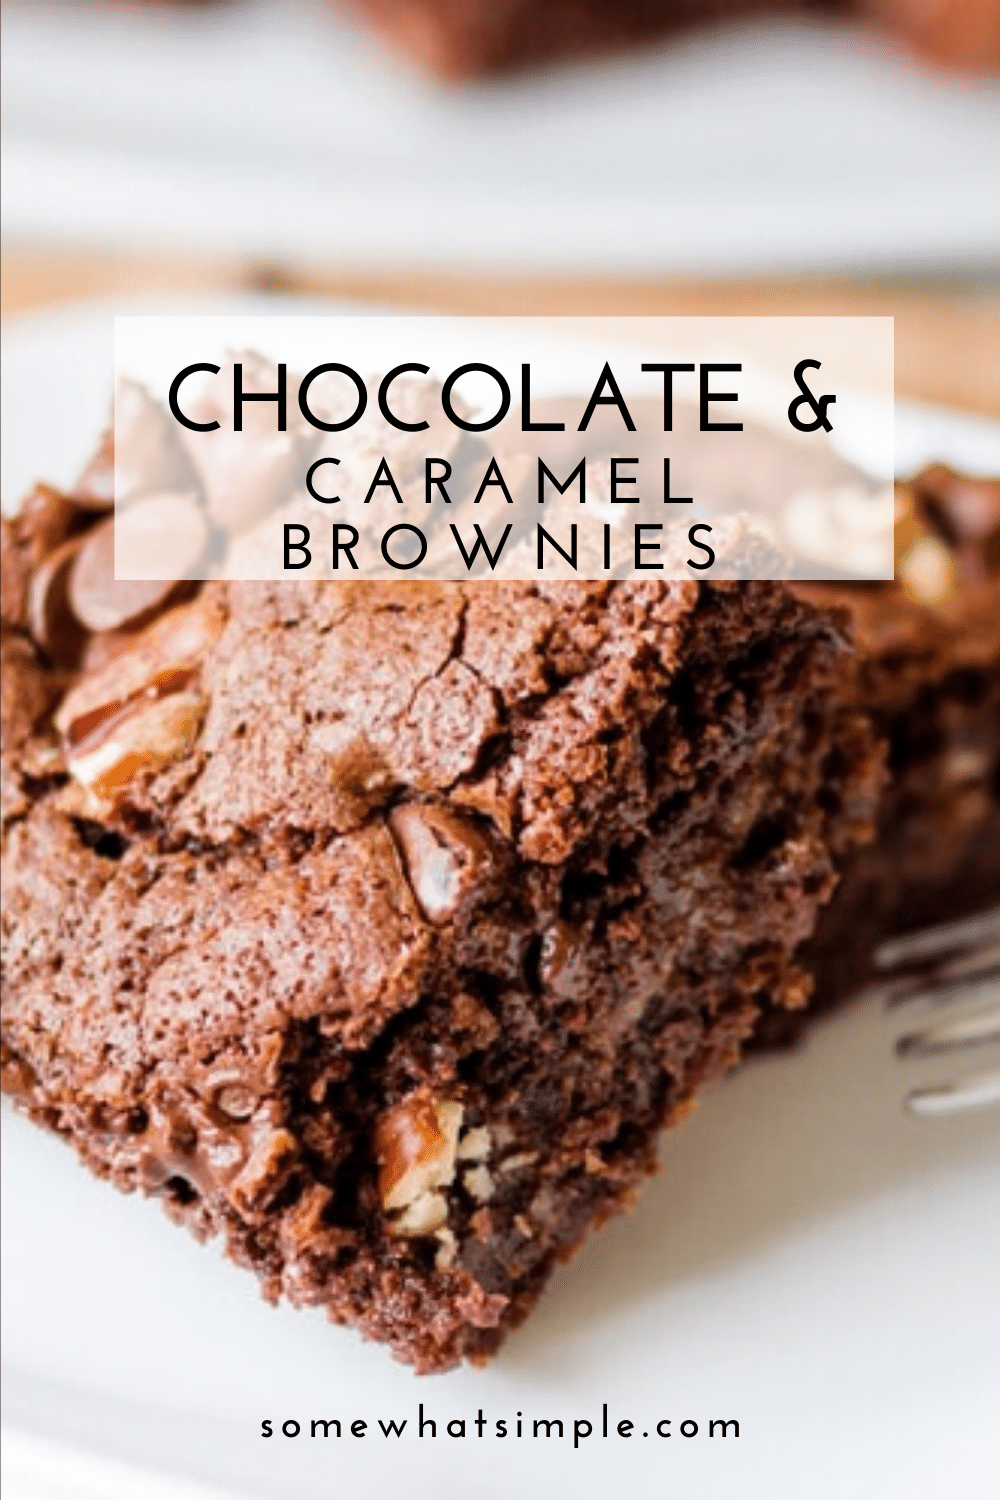 Chocolate and caramel brownies are a match made in heaven. Add pecans and you have unbeatable brownie recipe that are perfect for any occasion! These homemade brownies are made from scratch, so you know they're good. Plus, this recipe is so easy to make too! via @somewhatsimple